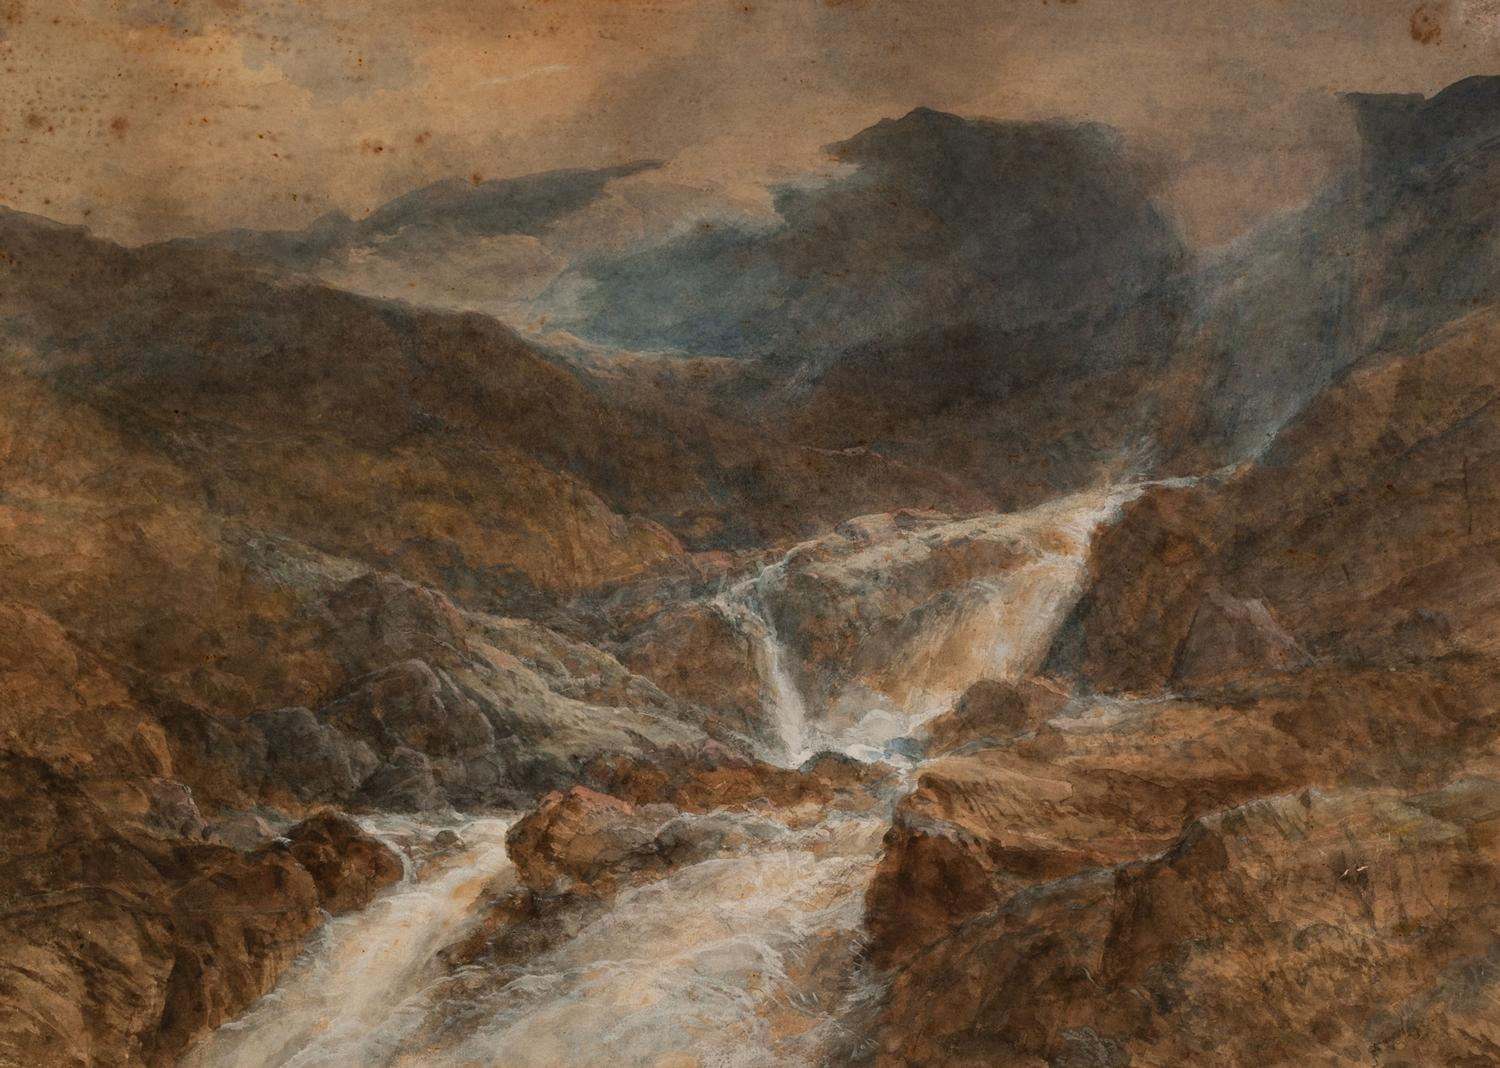 Lot 192 - UNATTRIBUTED (NINETEENTH CENTURY BRITISH SCHOOL) WATERCOLOUR DRAWING Misty highland landscape with